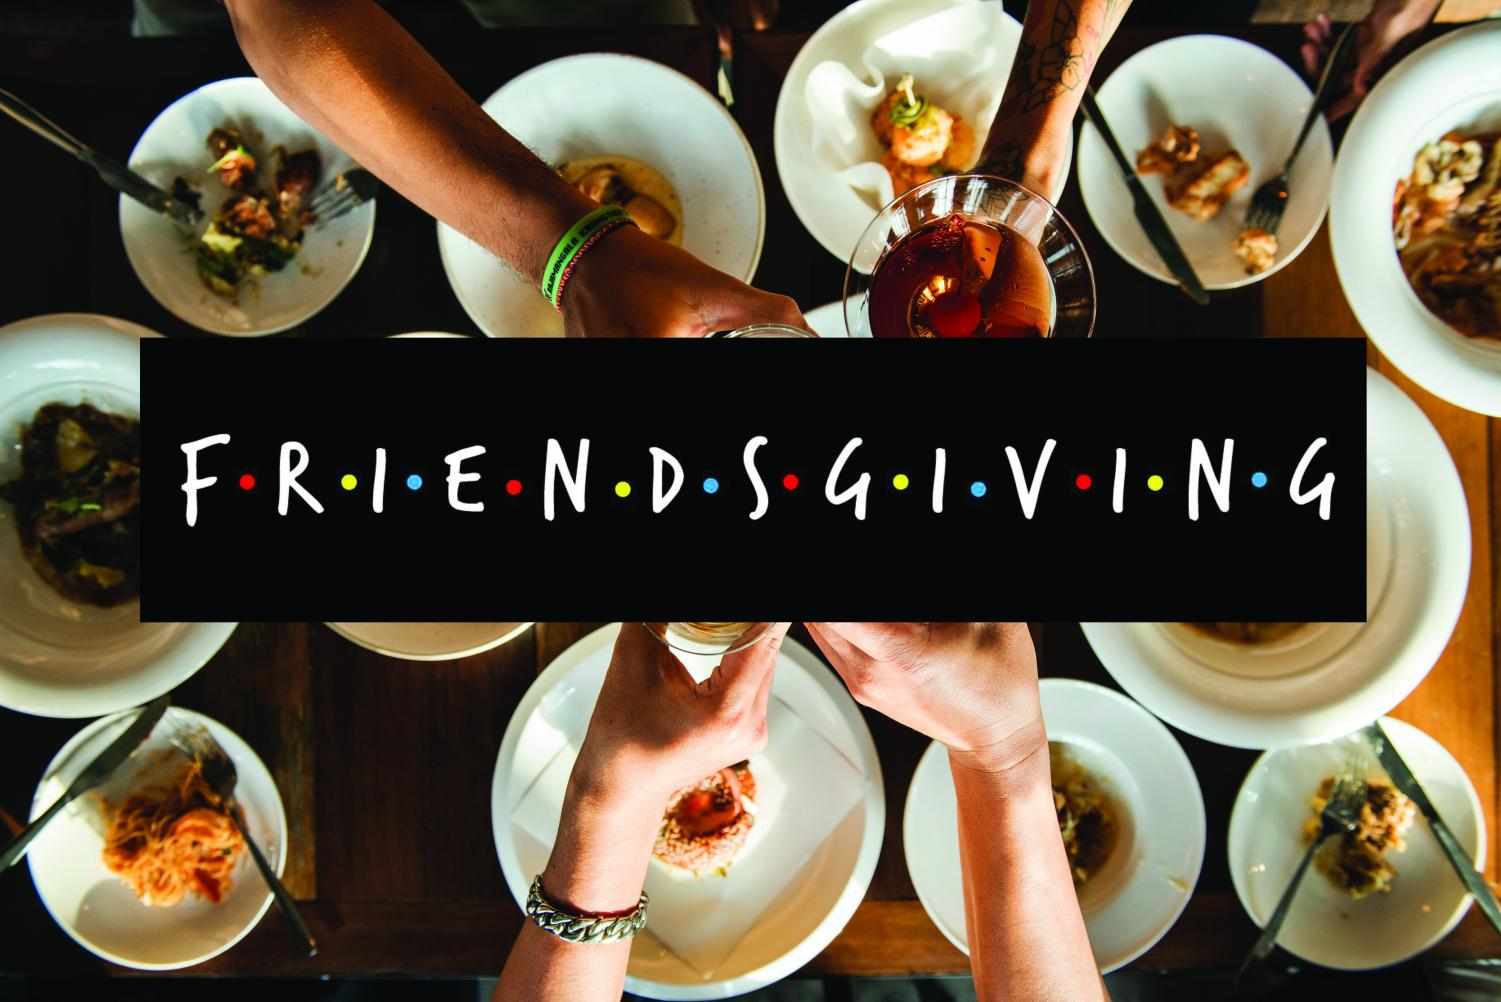 Friendsgiving is a valuable day for sharing the food you made with friends. (Photo Design by Erika Suarez)